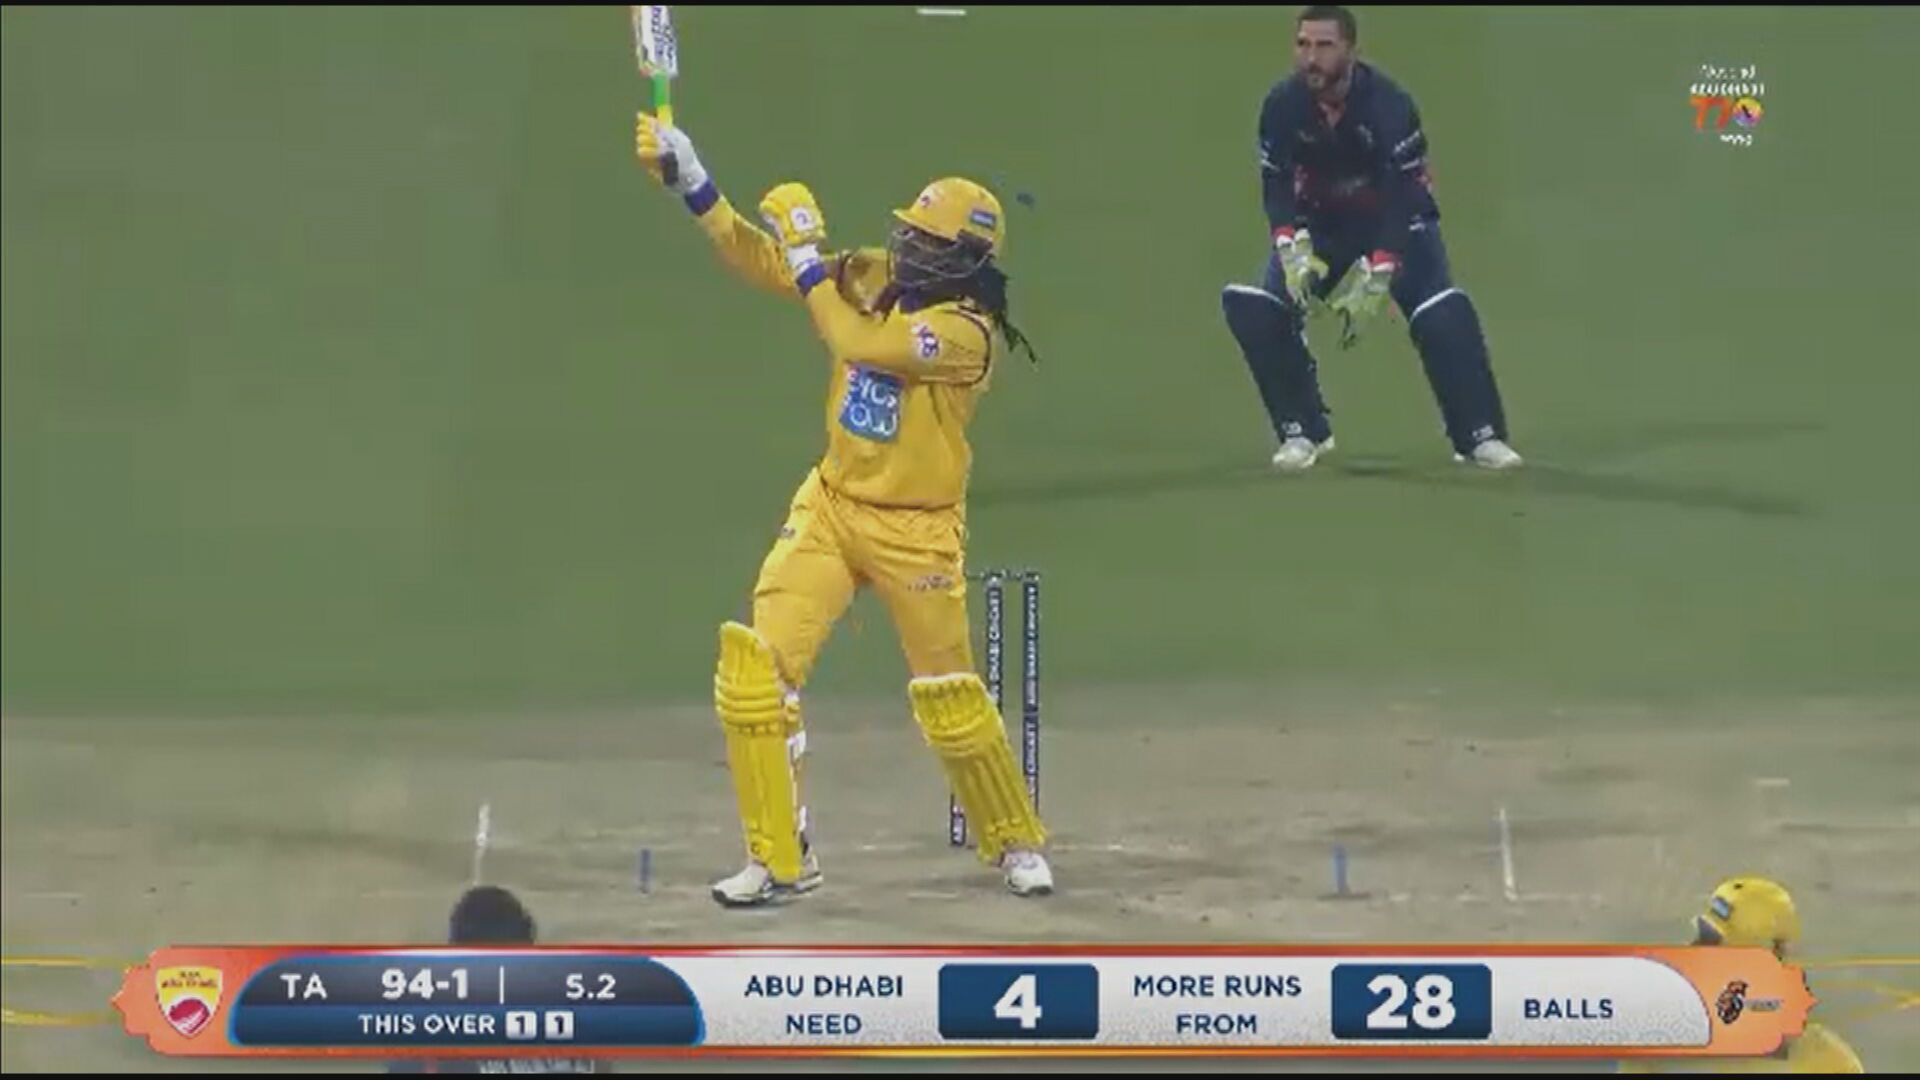 Chris Gayle equals his own world record with outrageous 84 not out from 22 balls